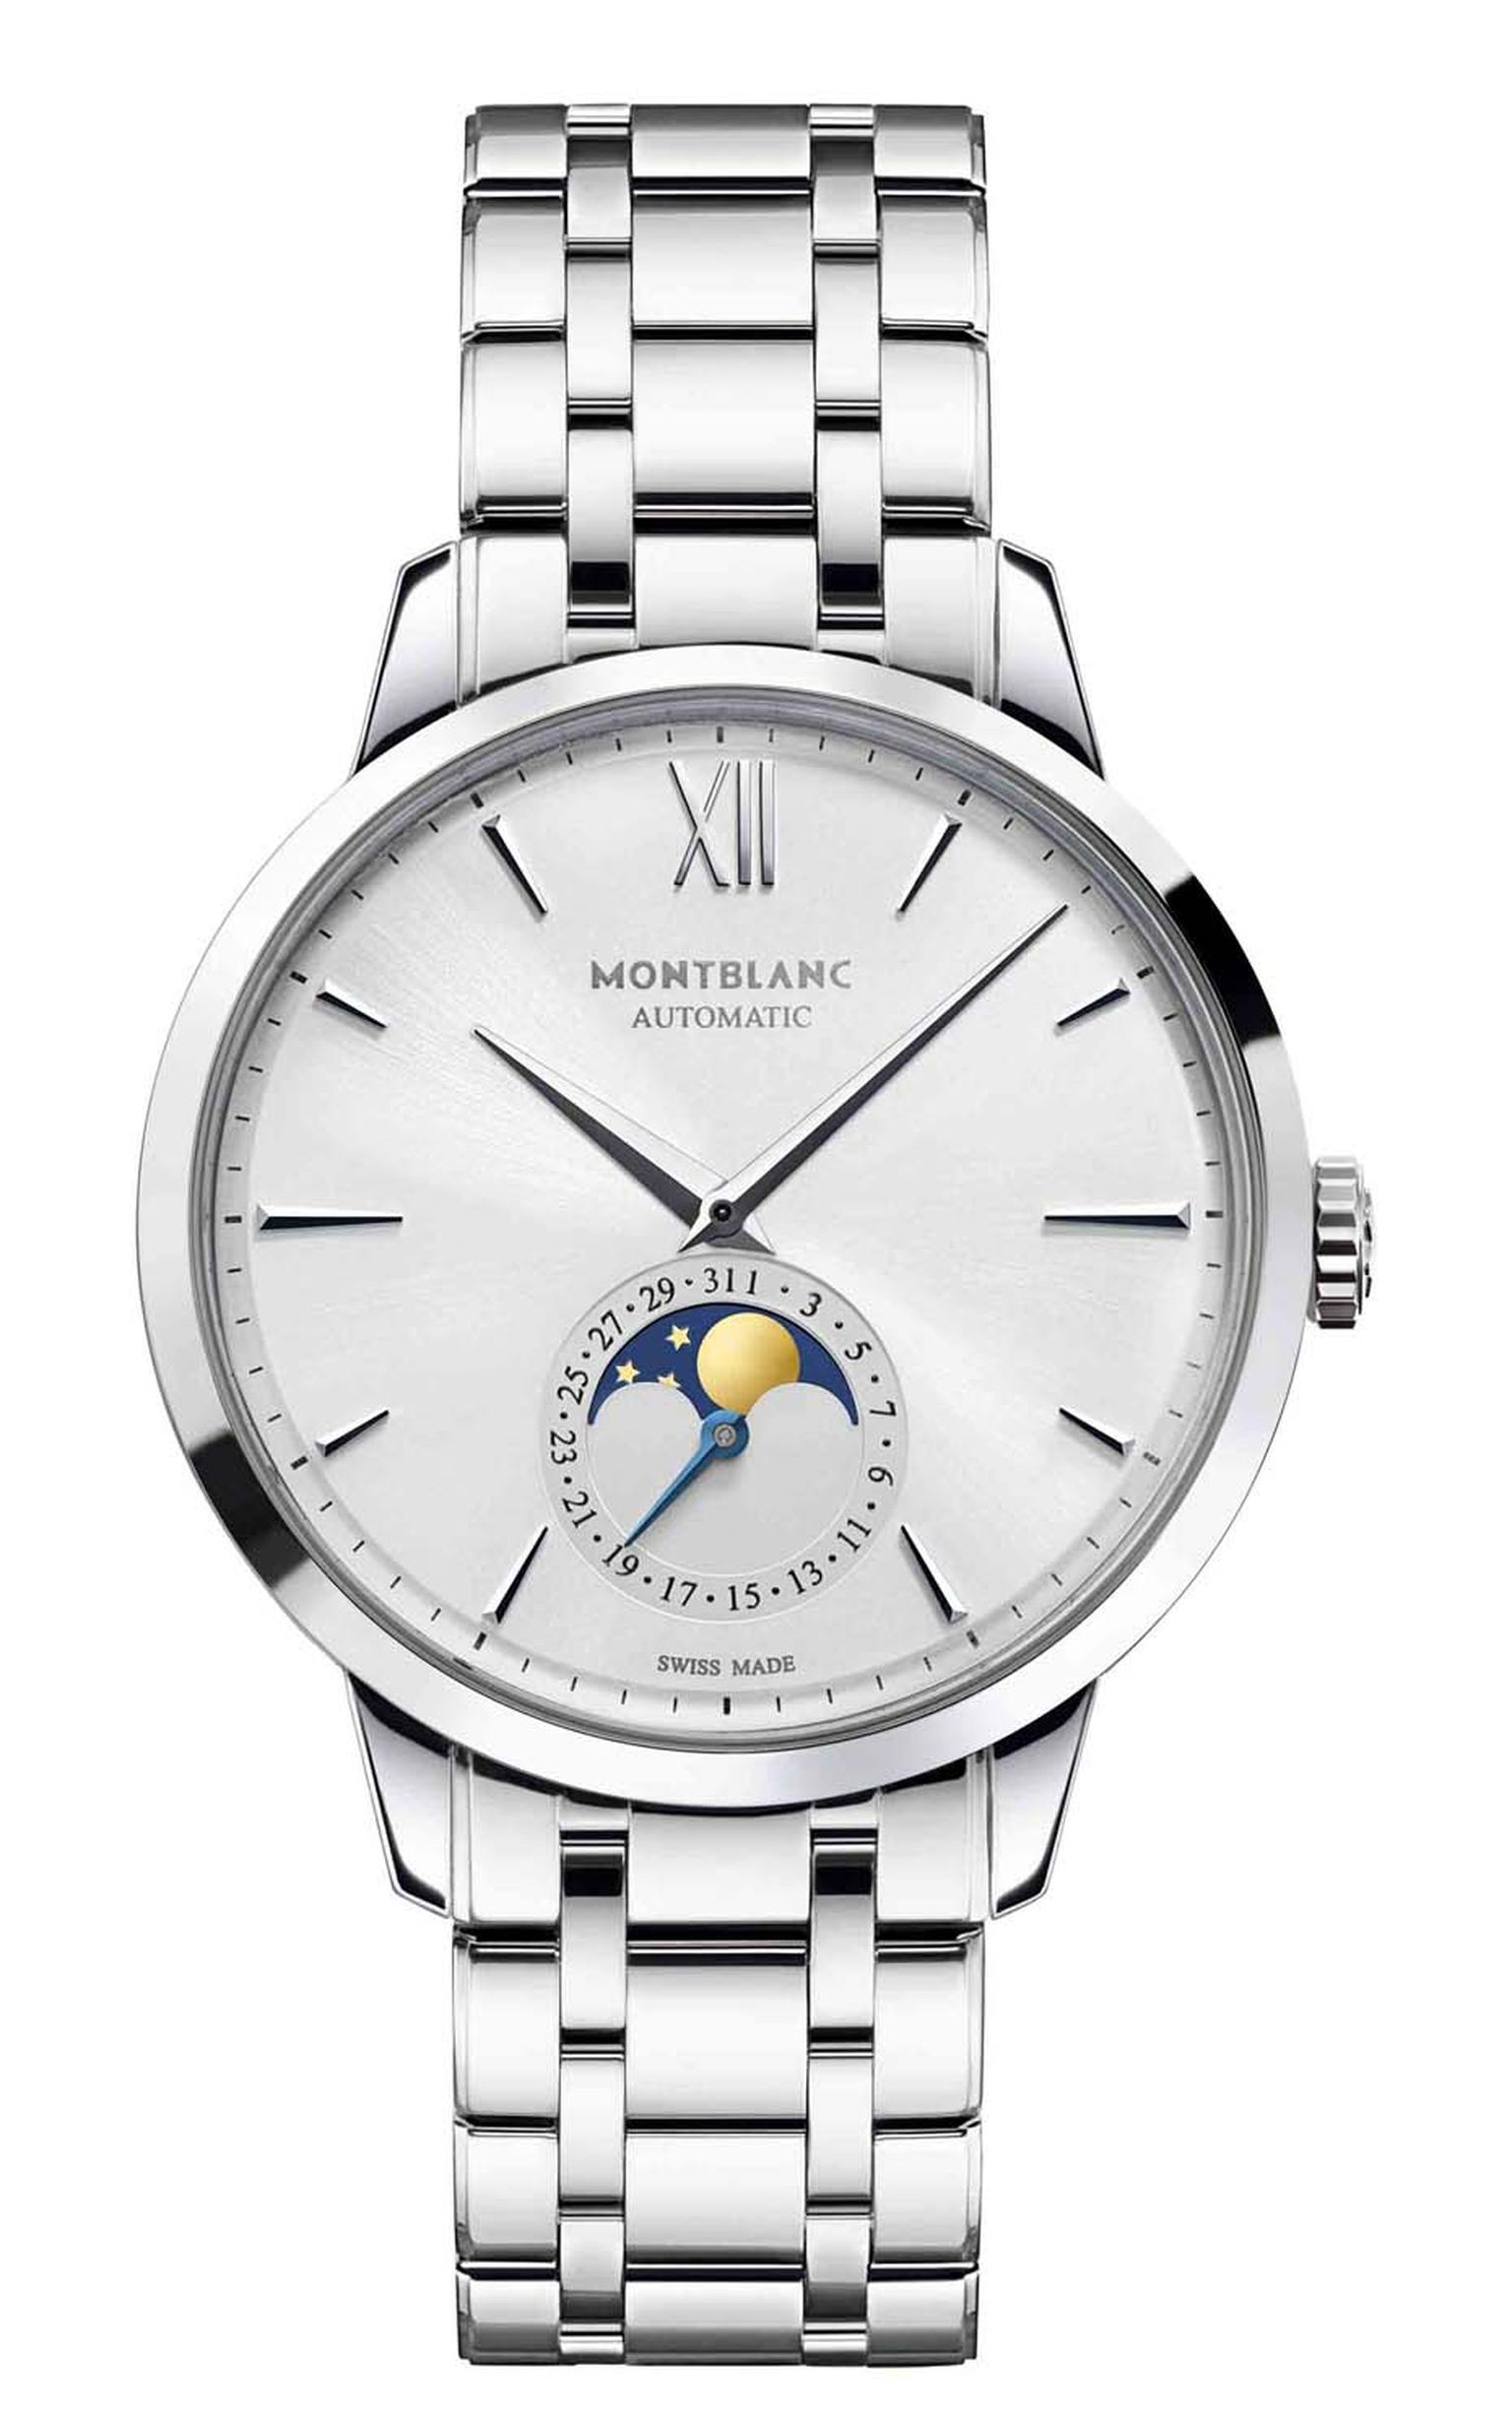 Montblanc released its Meisterstück Heritage Collection to rave reviews earlier this year, including the elegant Montblanc Heritage Moonphase watch in stainless steel (£2,695).